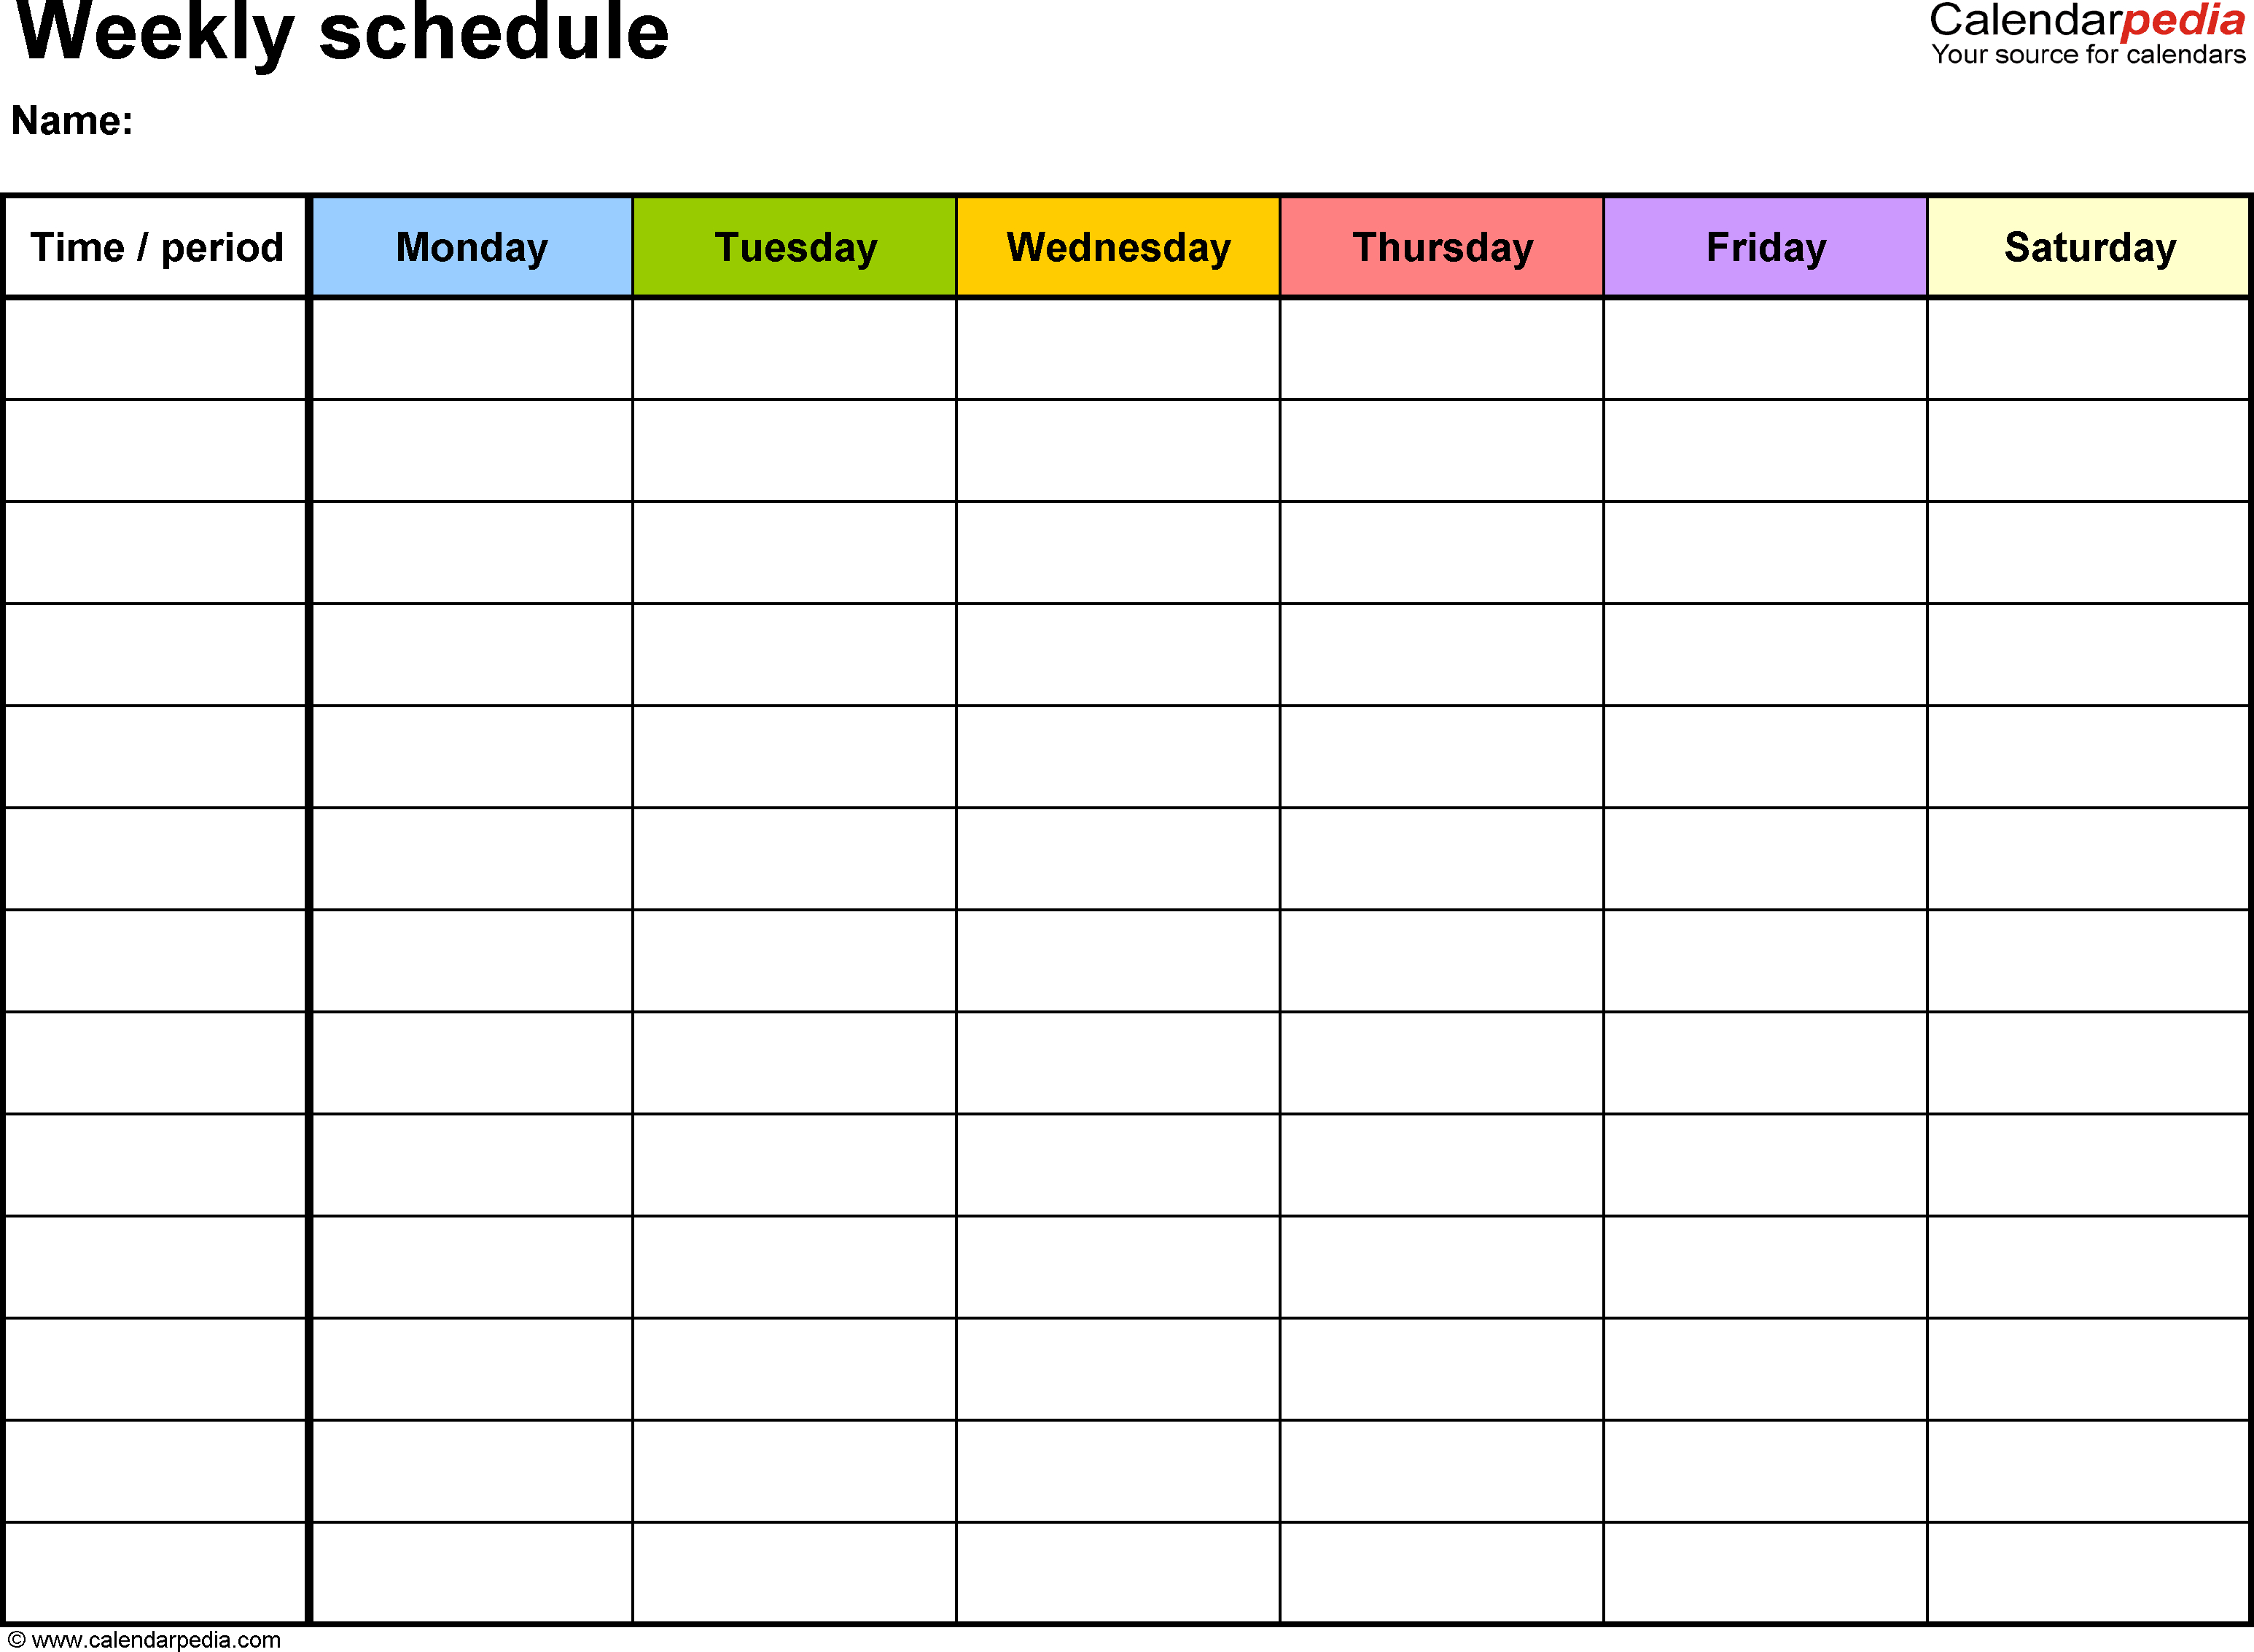 Free Weekly Schedule Templates For Word - 18 Templates with regard to Template Monday Through Friday Calendar